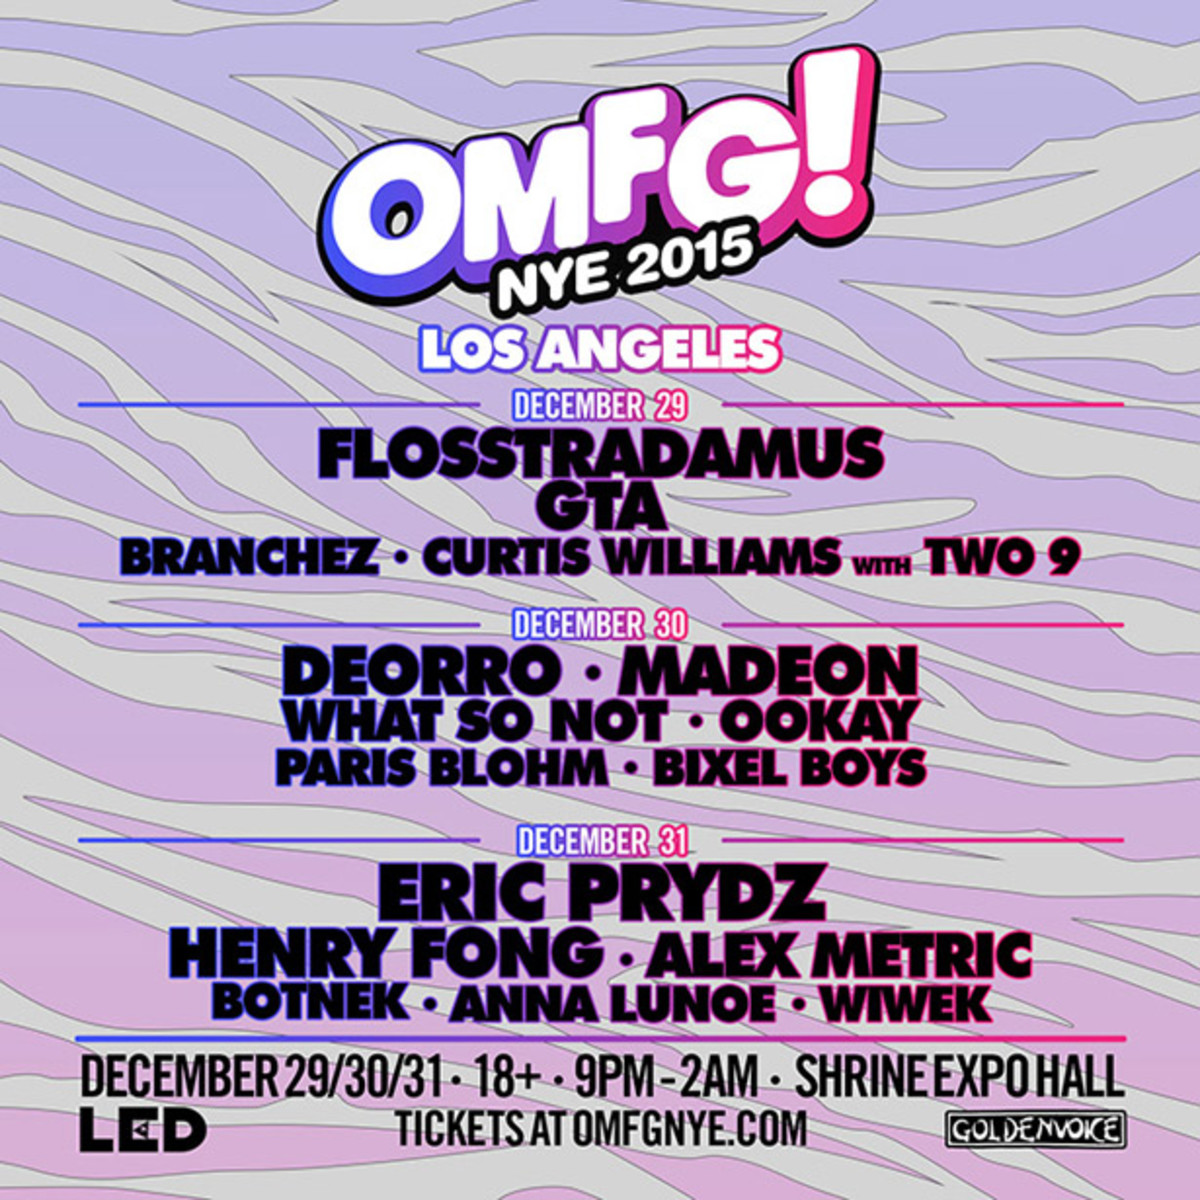 Spotlight Event: LED's Got The EPIC NYE Event with OMFG! LA